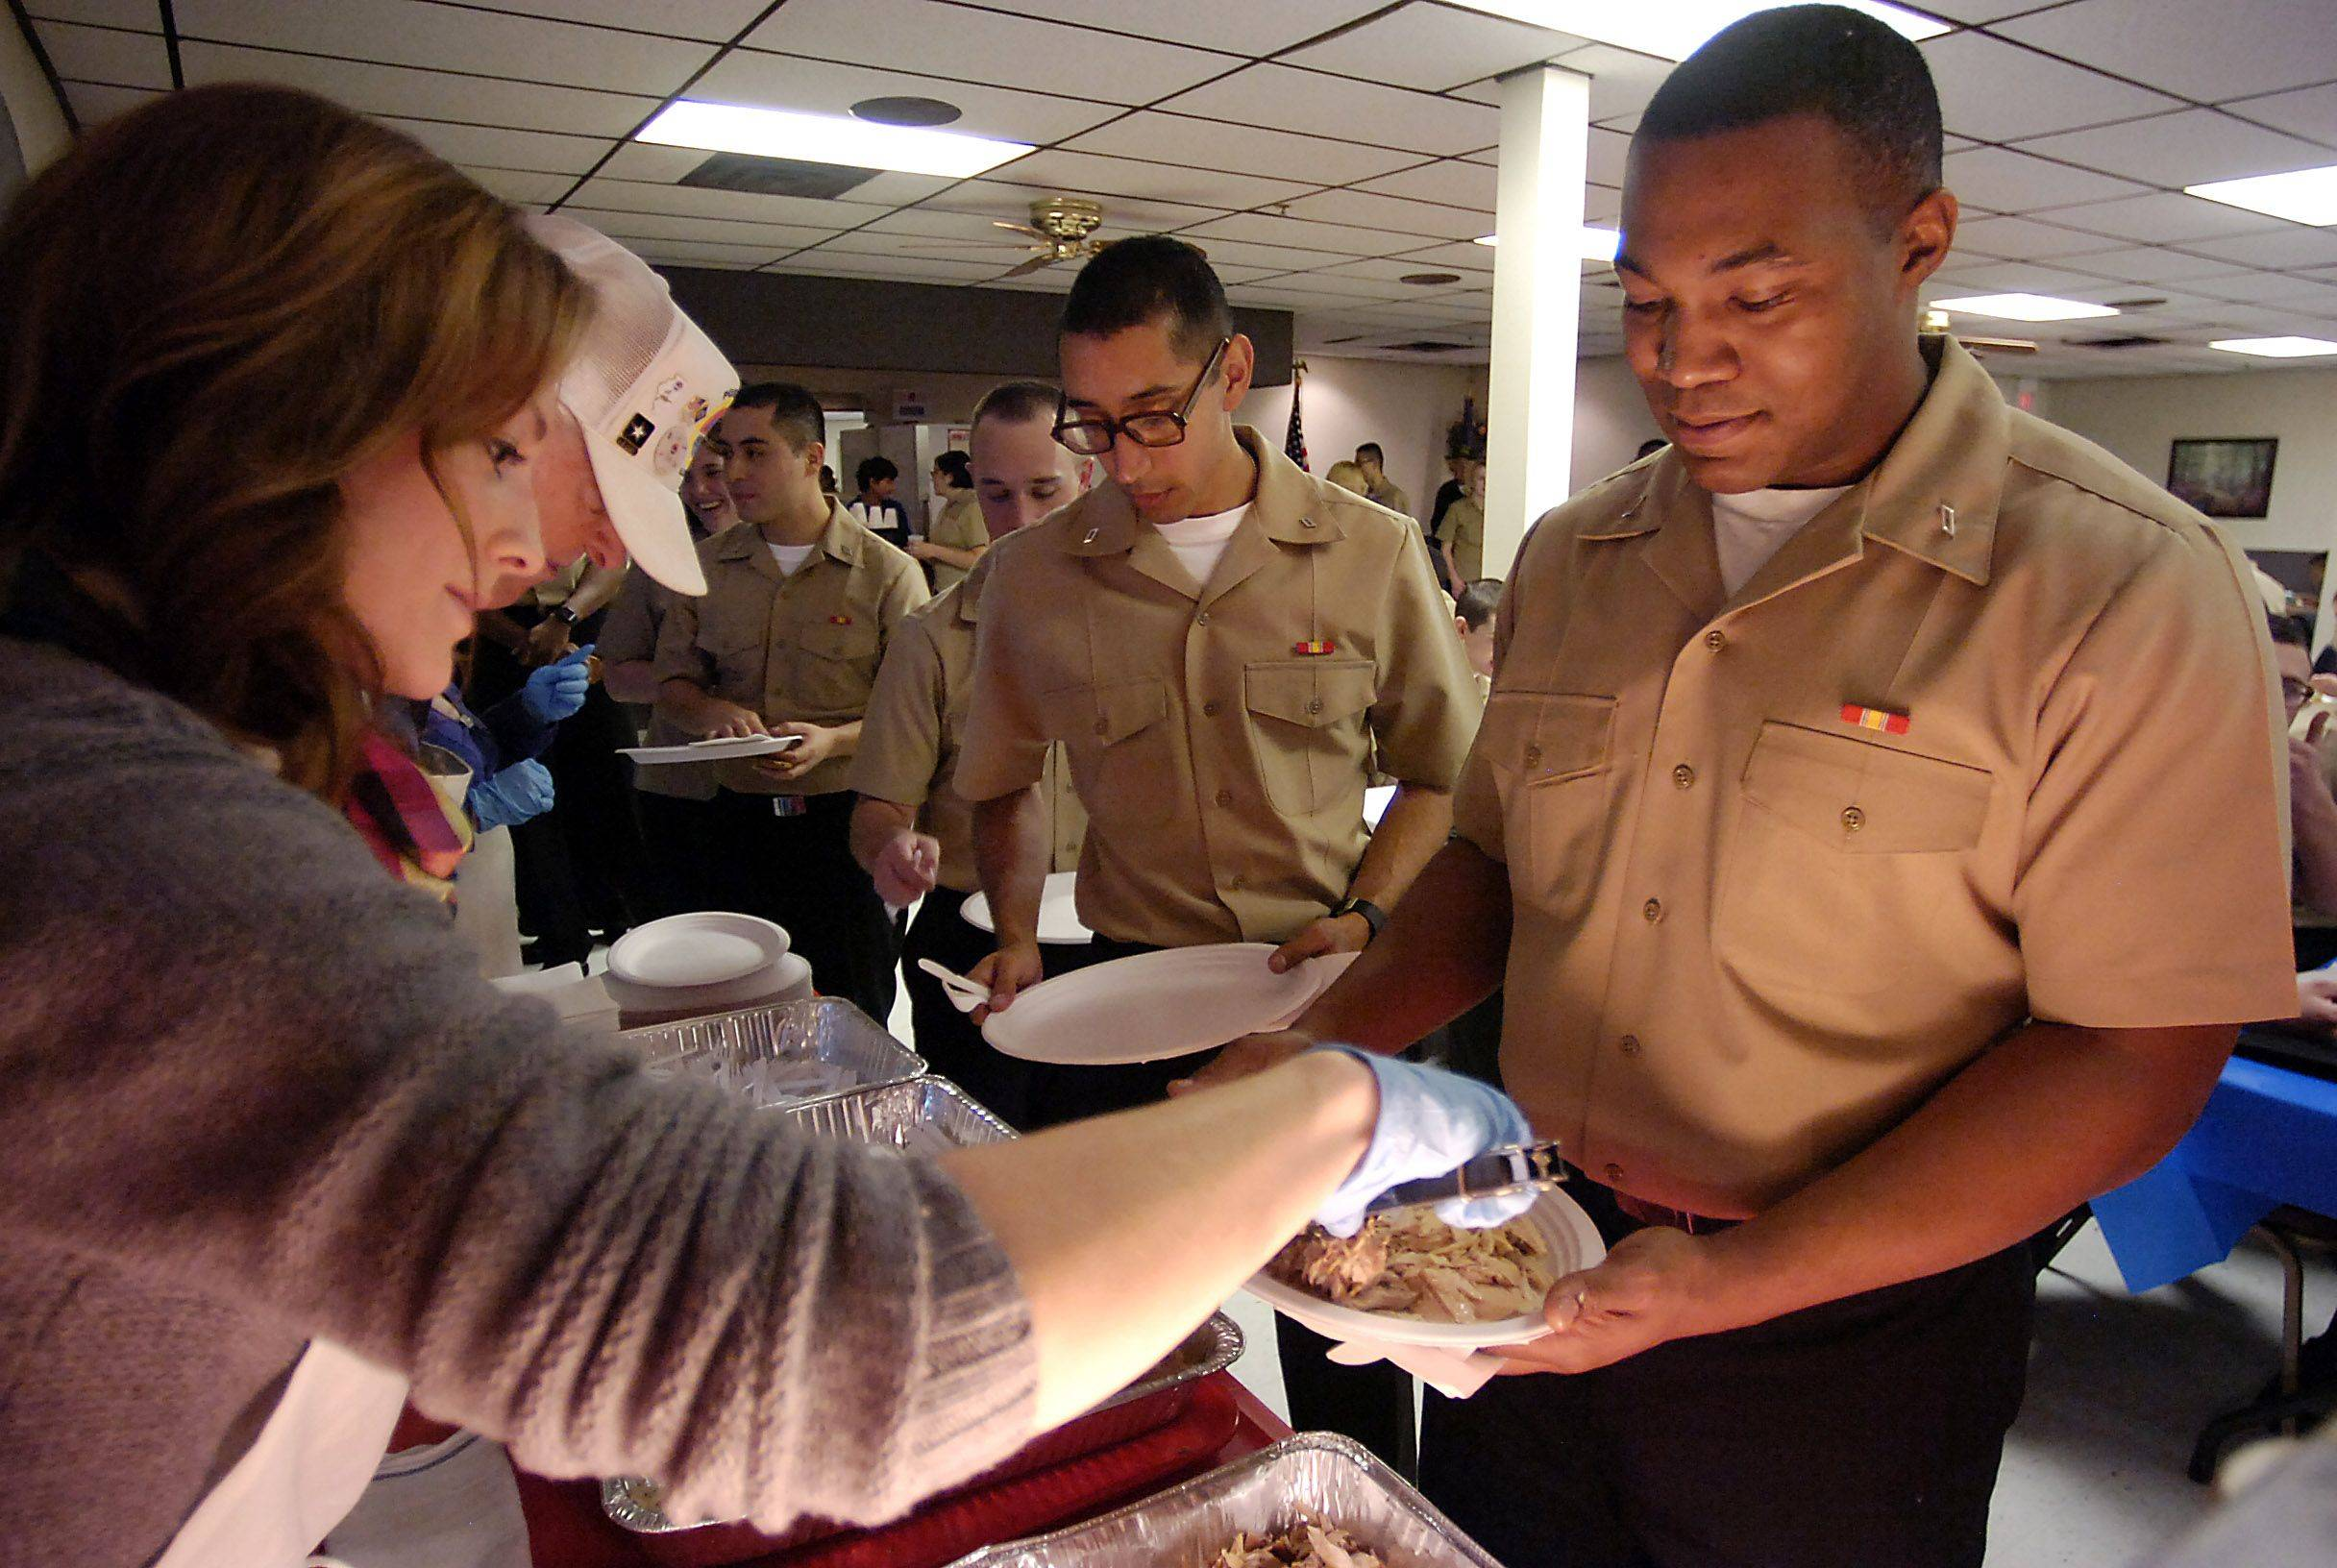 Volunteer Kristina Soukup of Arlington Heights serves up a hot turkey meal to Kyron Malone, 23, of Tennessee, just one of nearly 100 Great Lakes recruits that spent their Thankgiving Day holiday at the Amvets Post 66 in Wheeling.